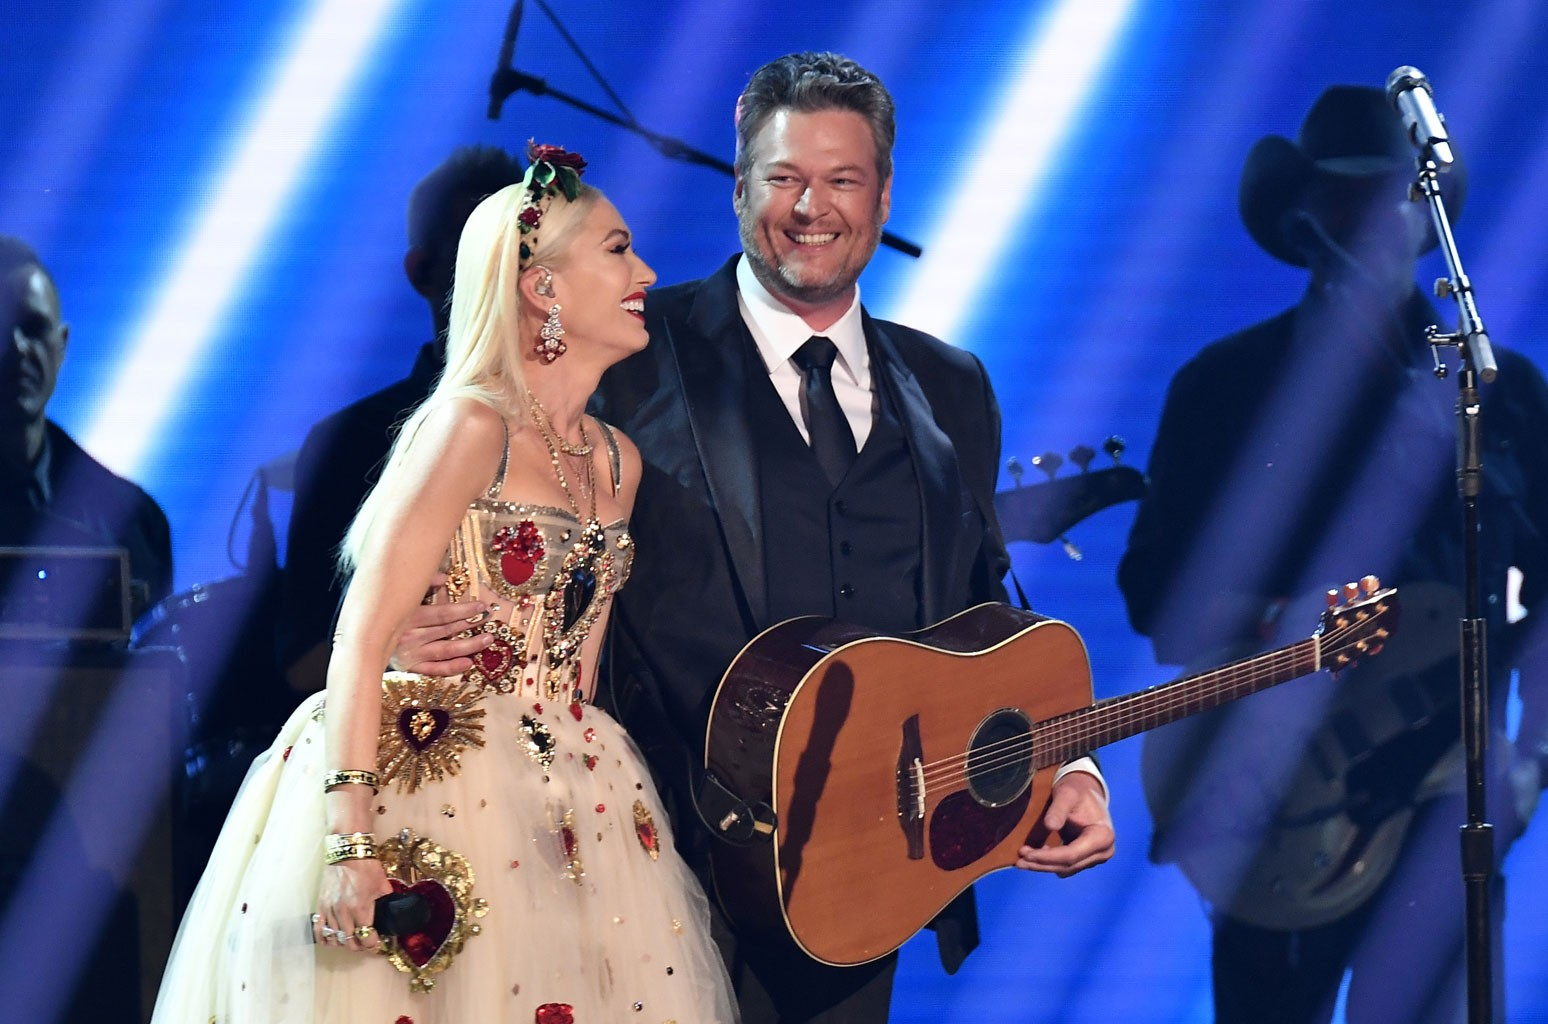 Gwen Stefani Will Be 'Pretty in Pink' at Wedding to Blake Shelton With This First Dance Song